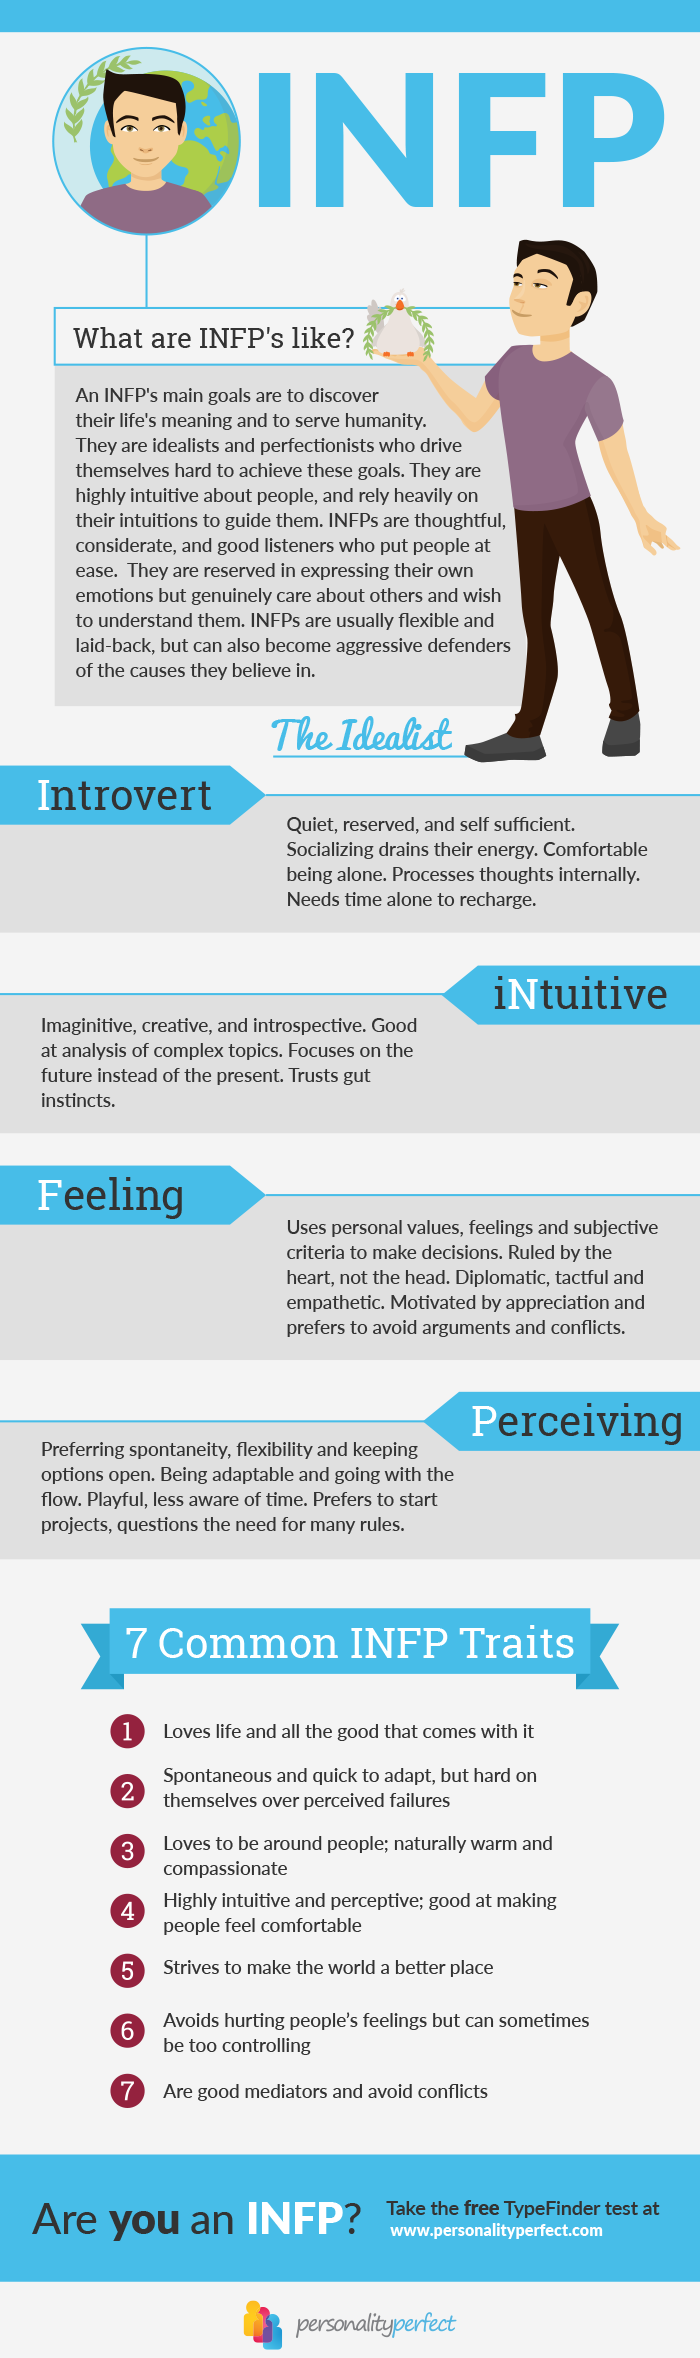 Personality Theories and Types